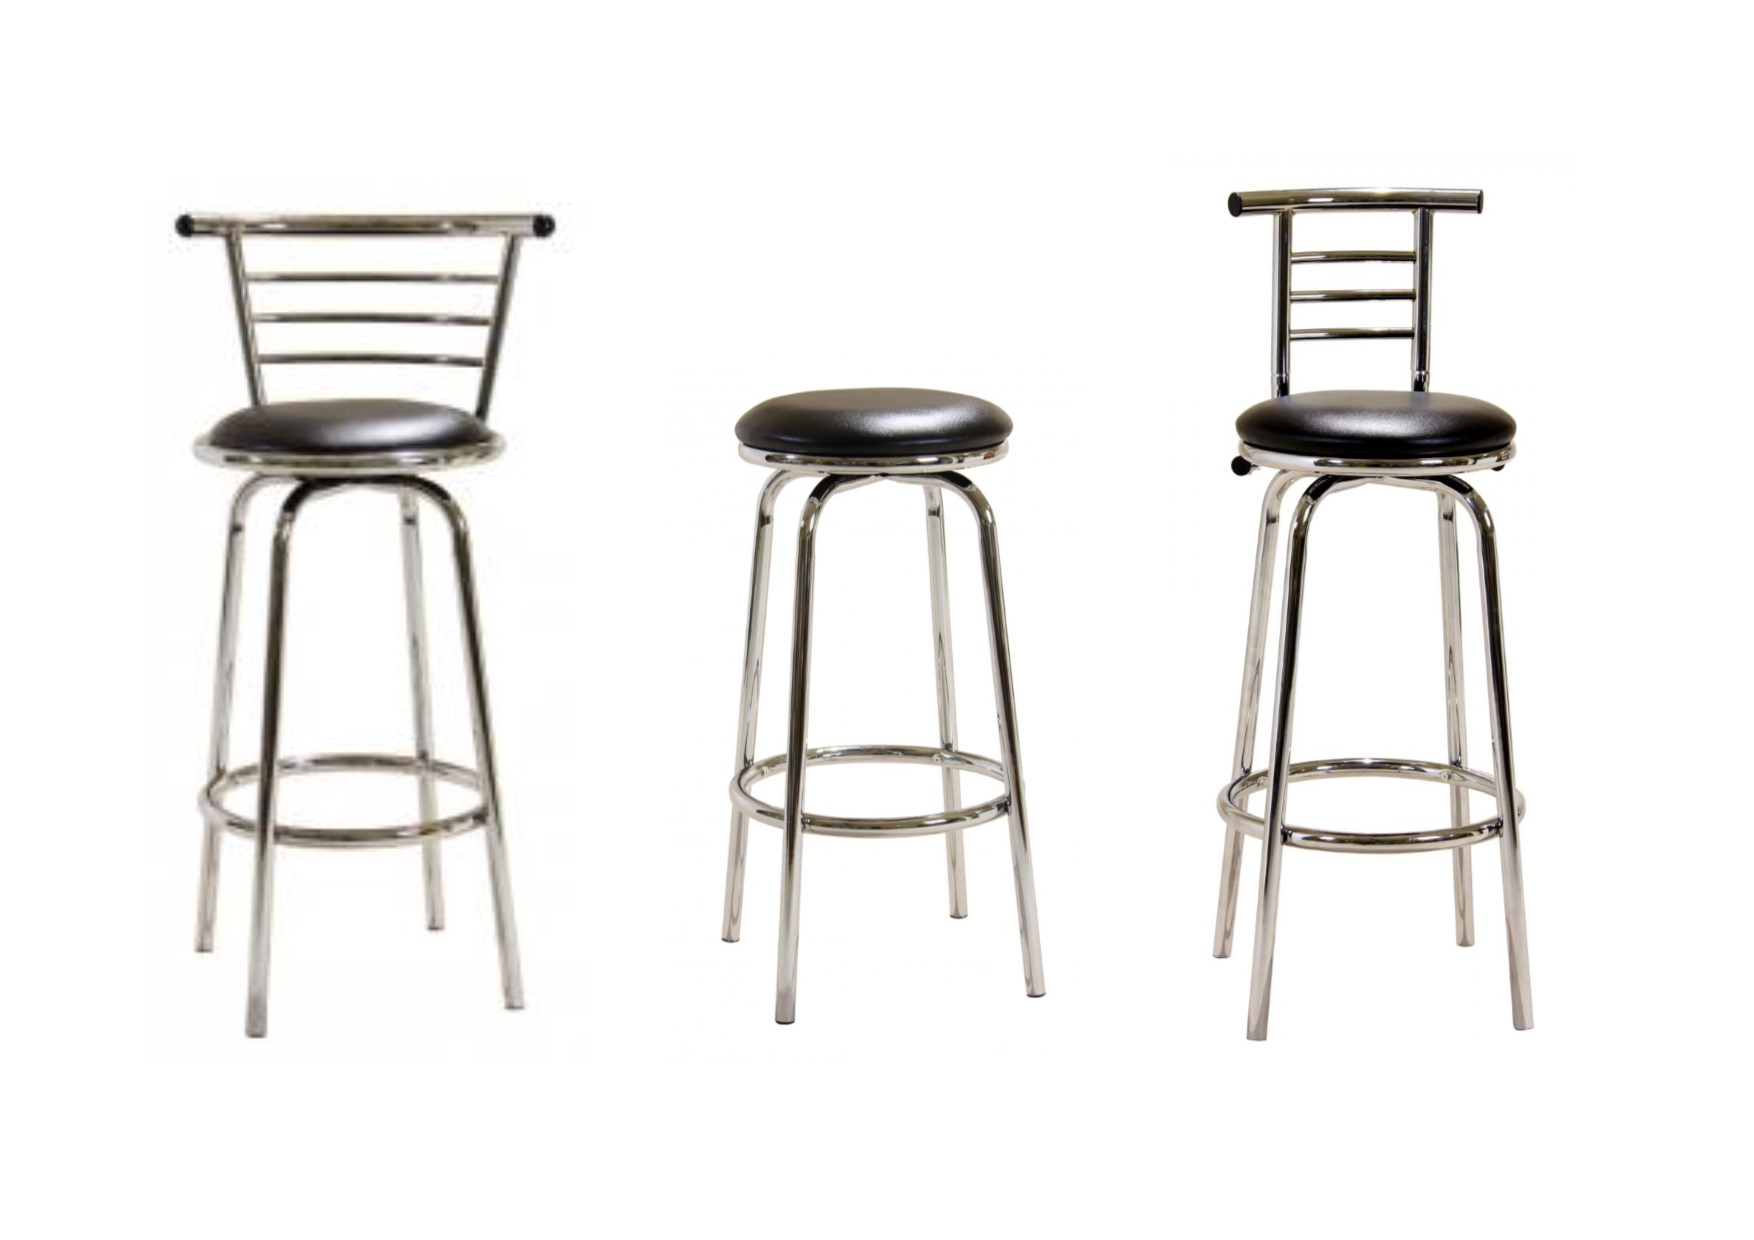 Heartlands Chrome Swivel Bar Stools No Back Narrow Wide